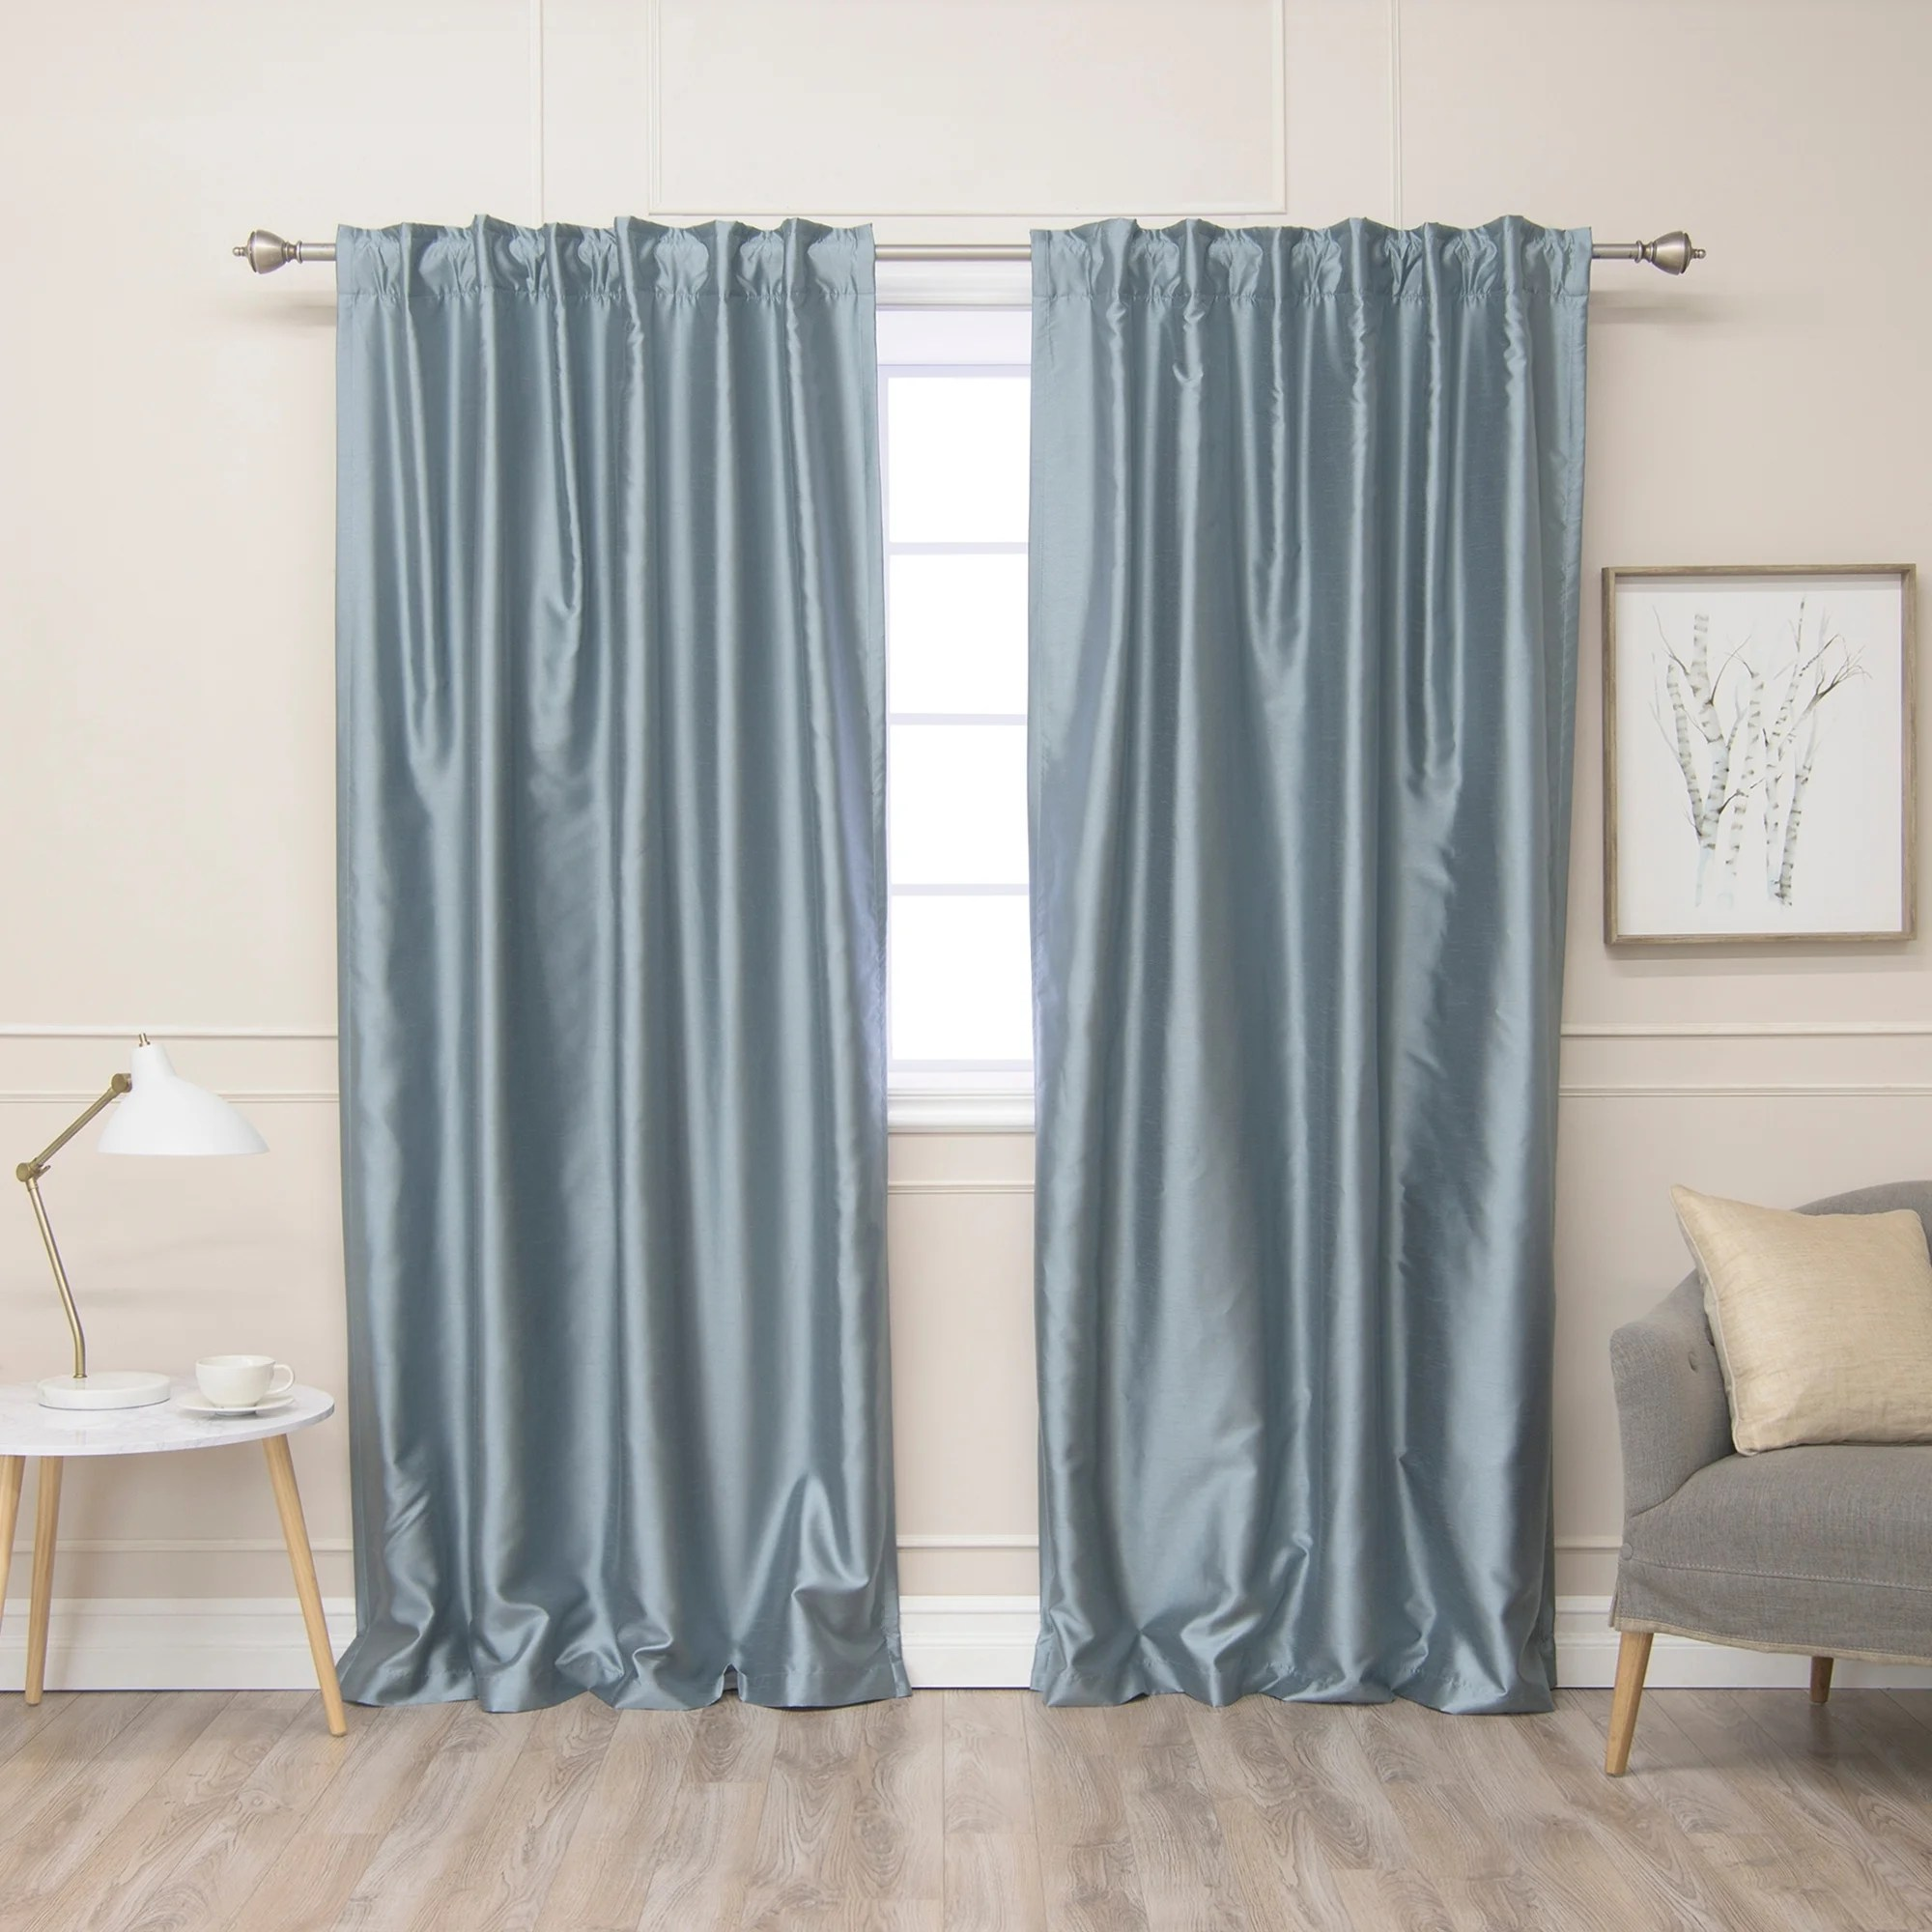 Faux Silk Curtains Aurora Home Faux Silk Blackout Lined Curtain Panel Pair 52